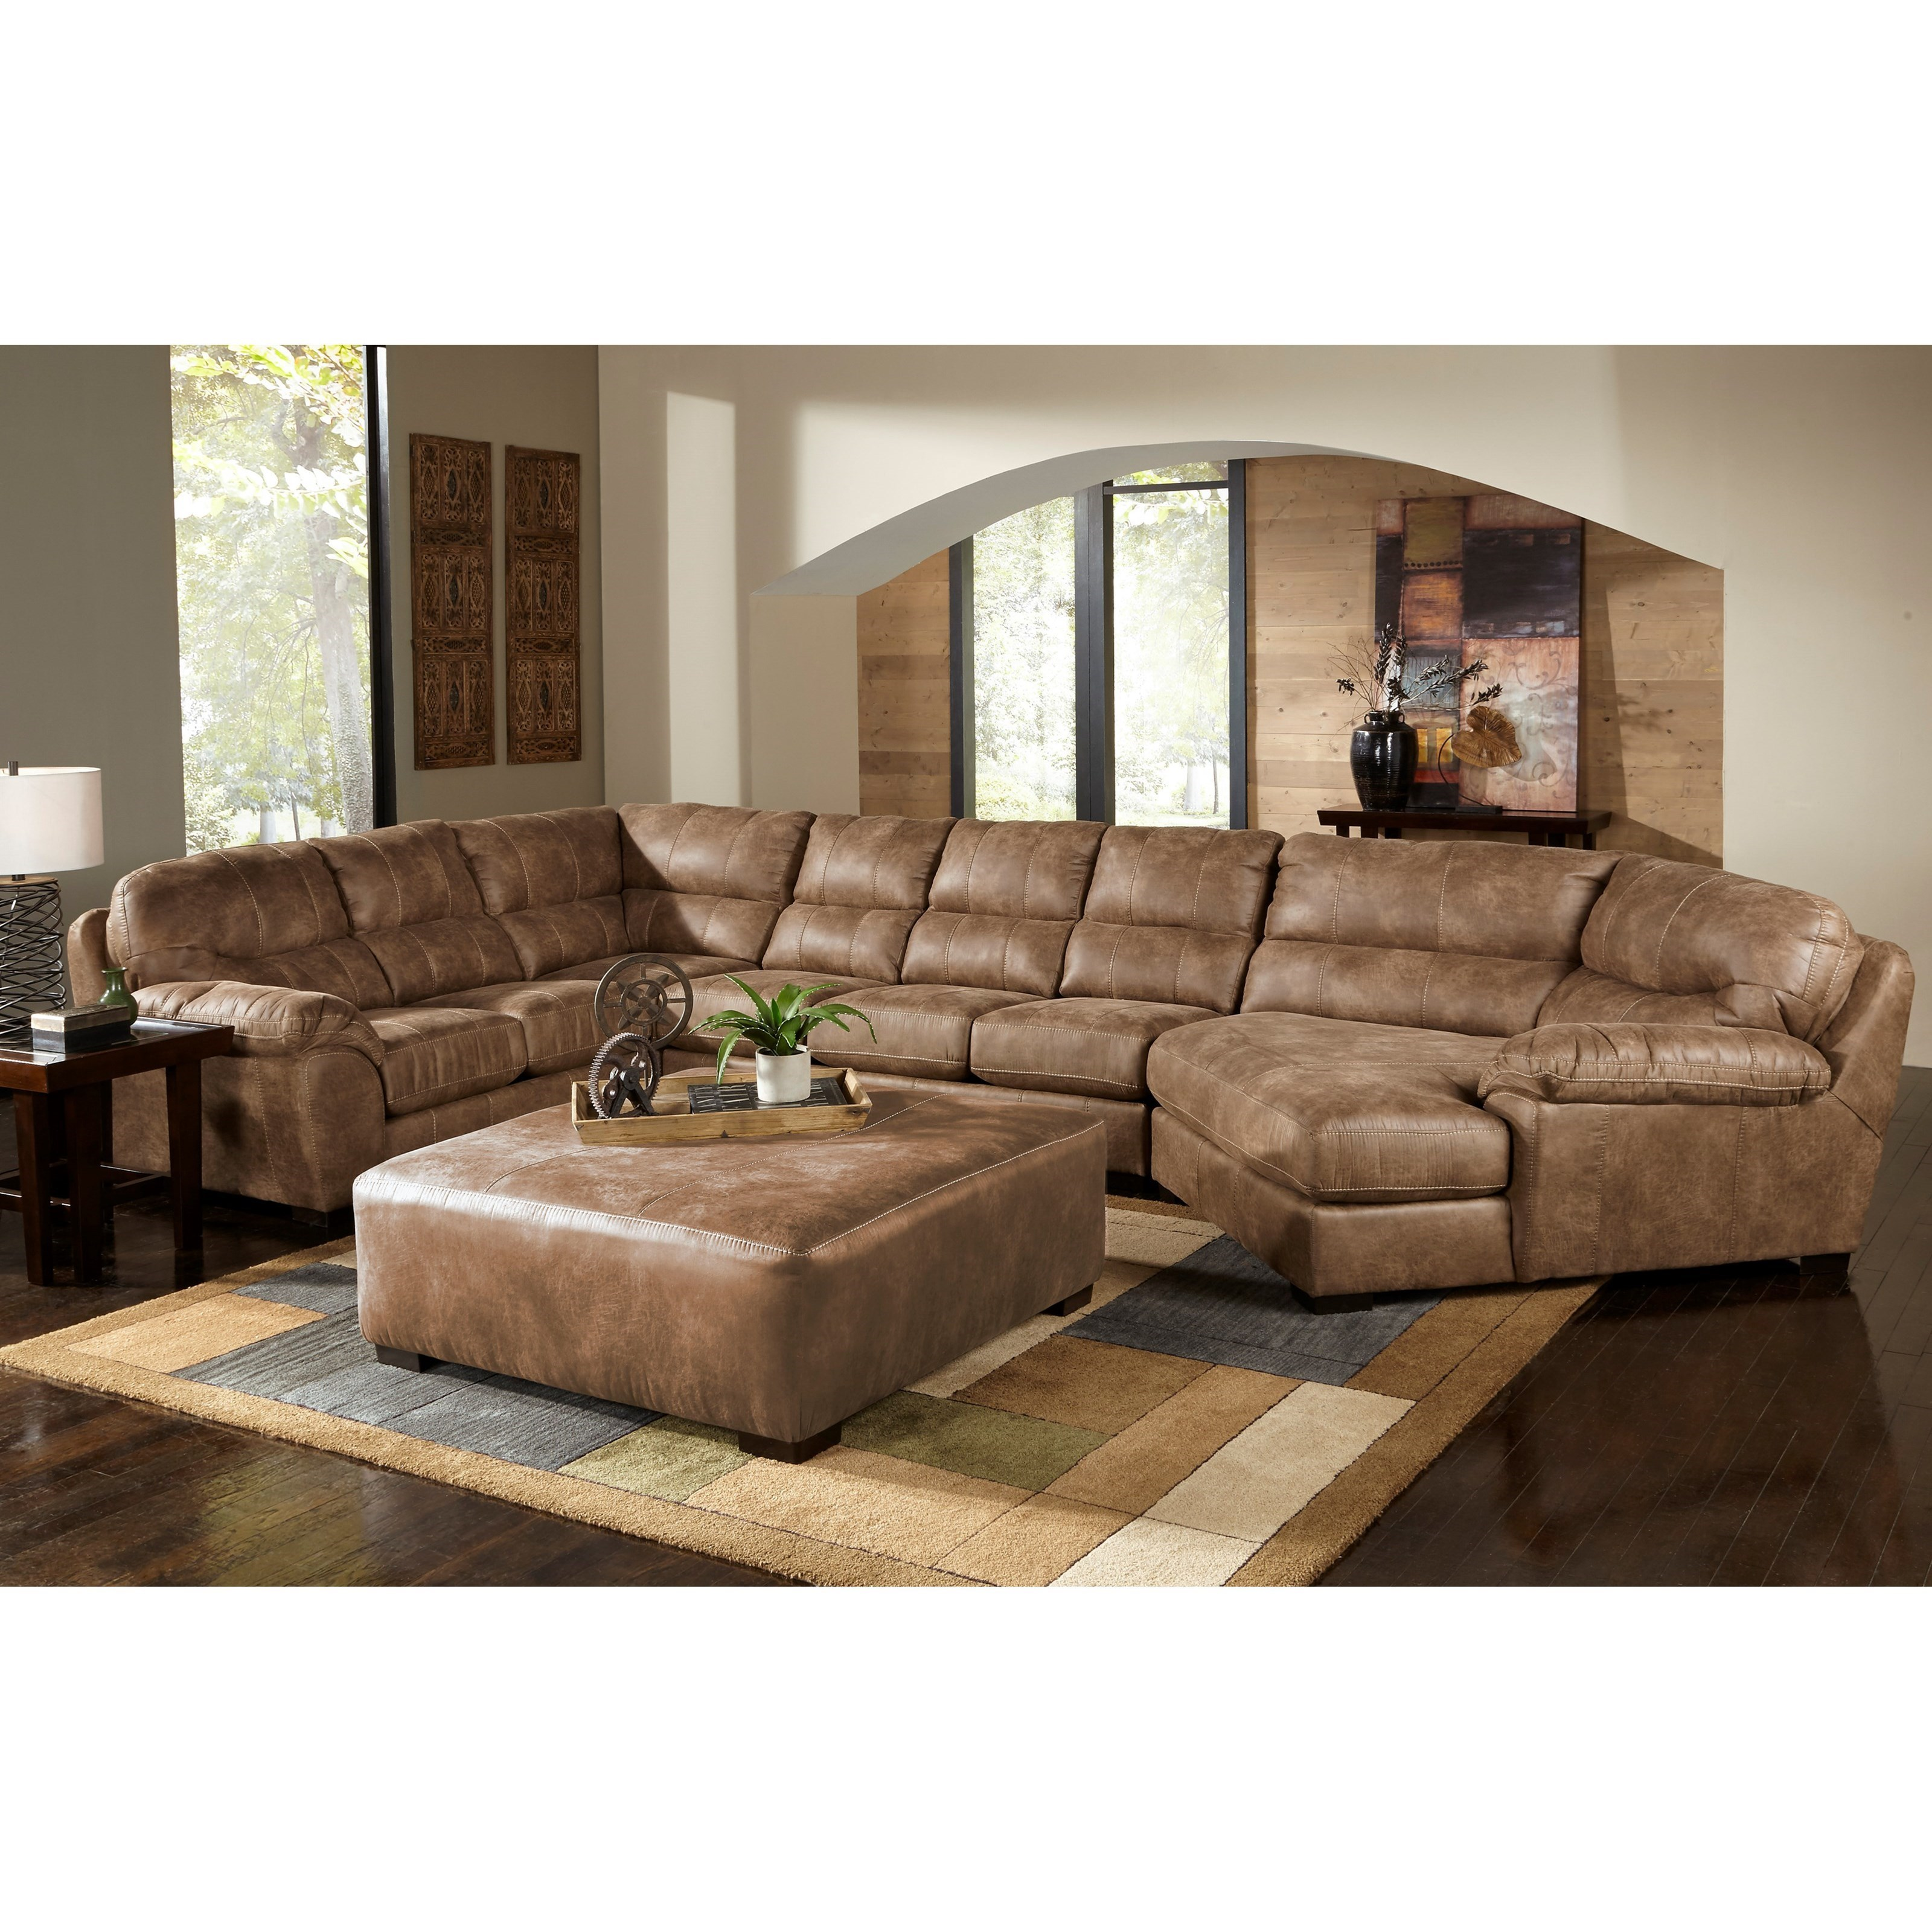 Jackson Furniture Grant Sectional Sofa  sc 1 st  Wayside Furniture : jackson sectional - Sectionals, Sofas & Couches